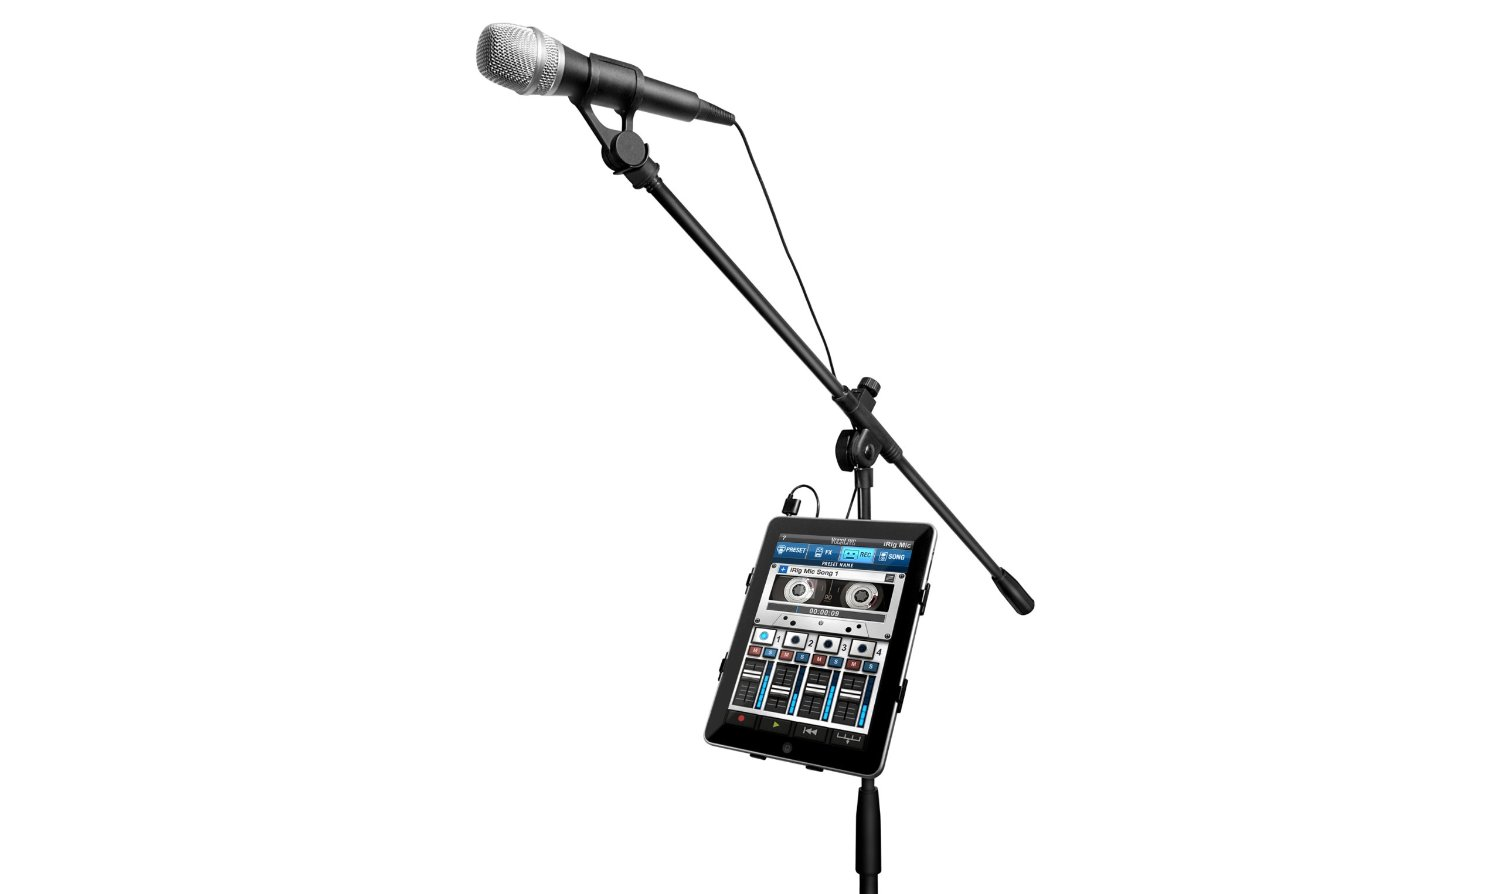 dynamic stage vocal microphone for your ios devices by ik multimedia